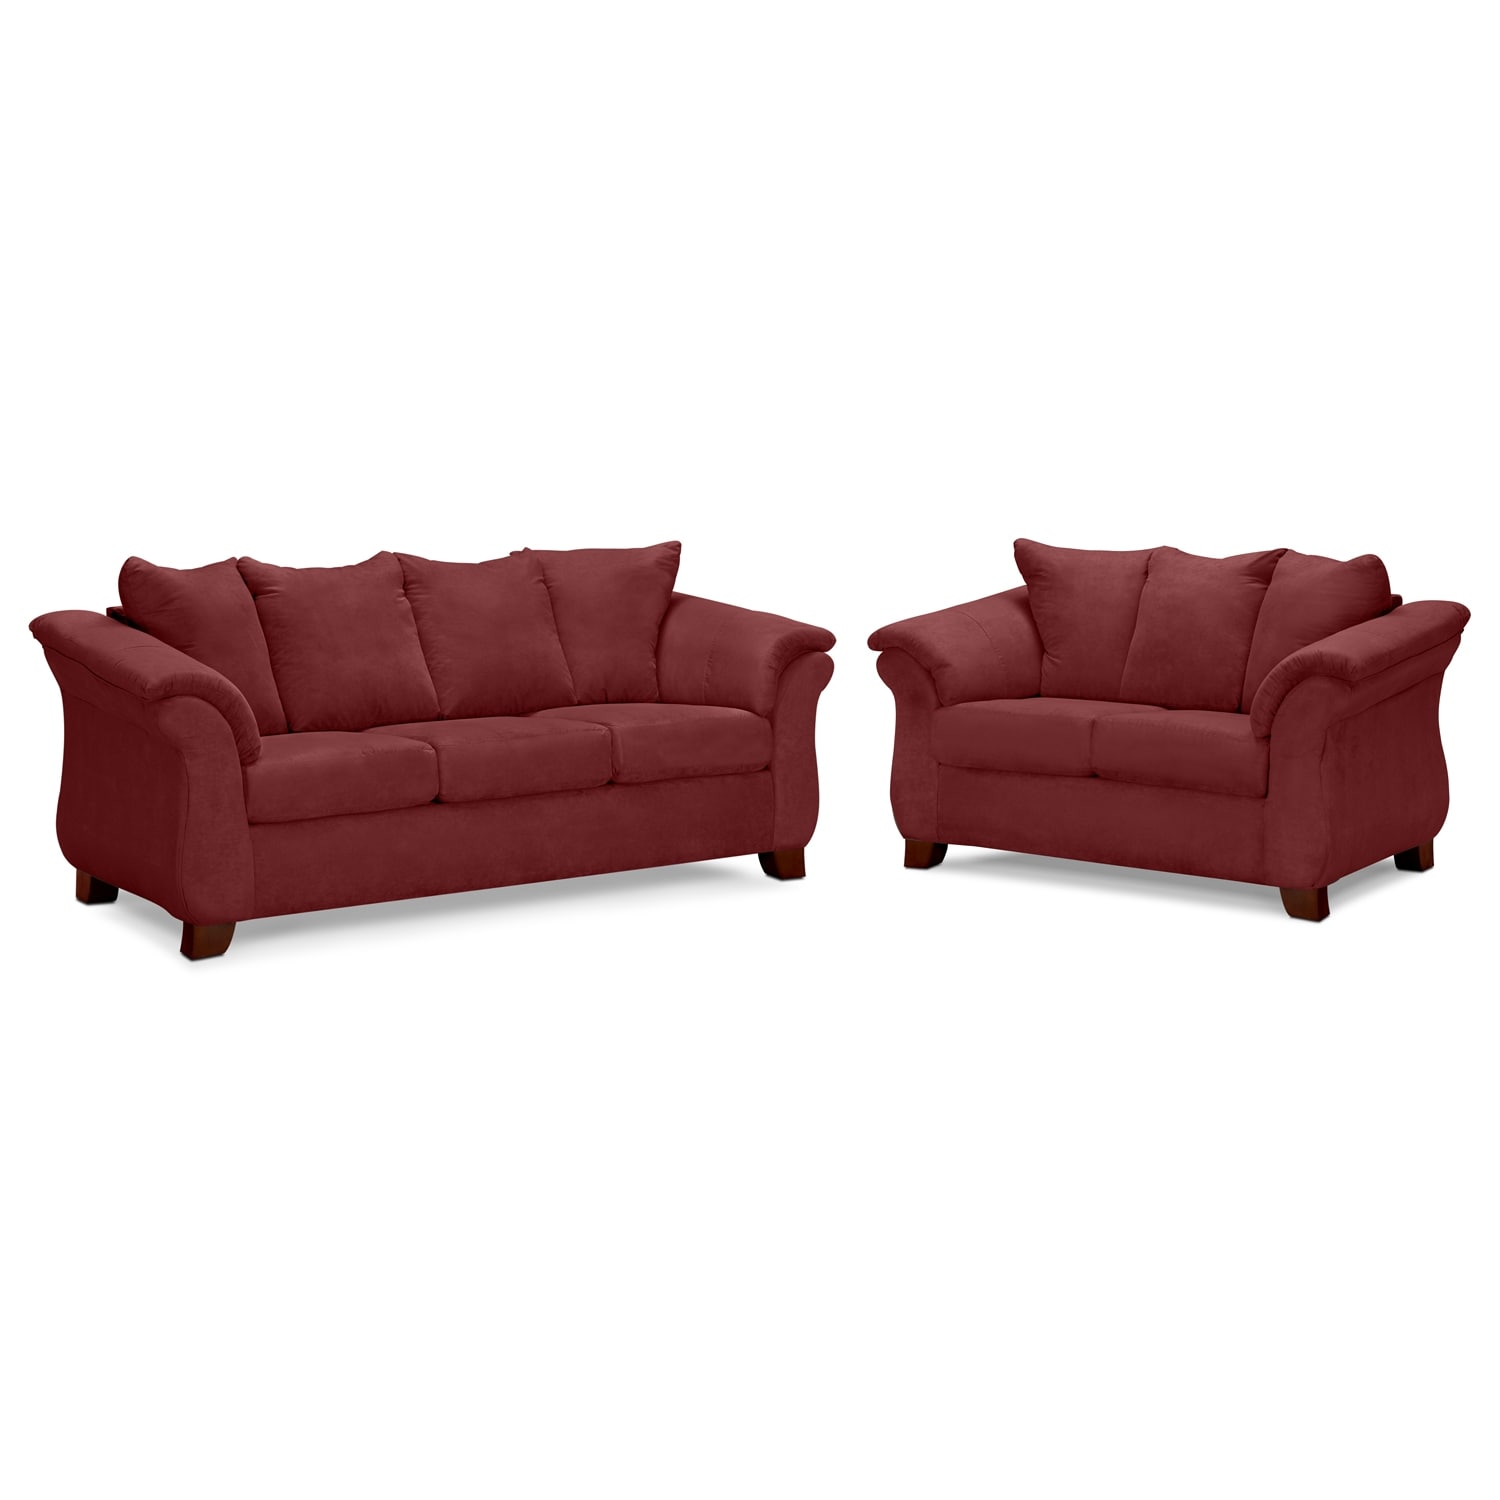 Adrian sofa and loveseat set red american signature for Signature furniture